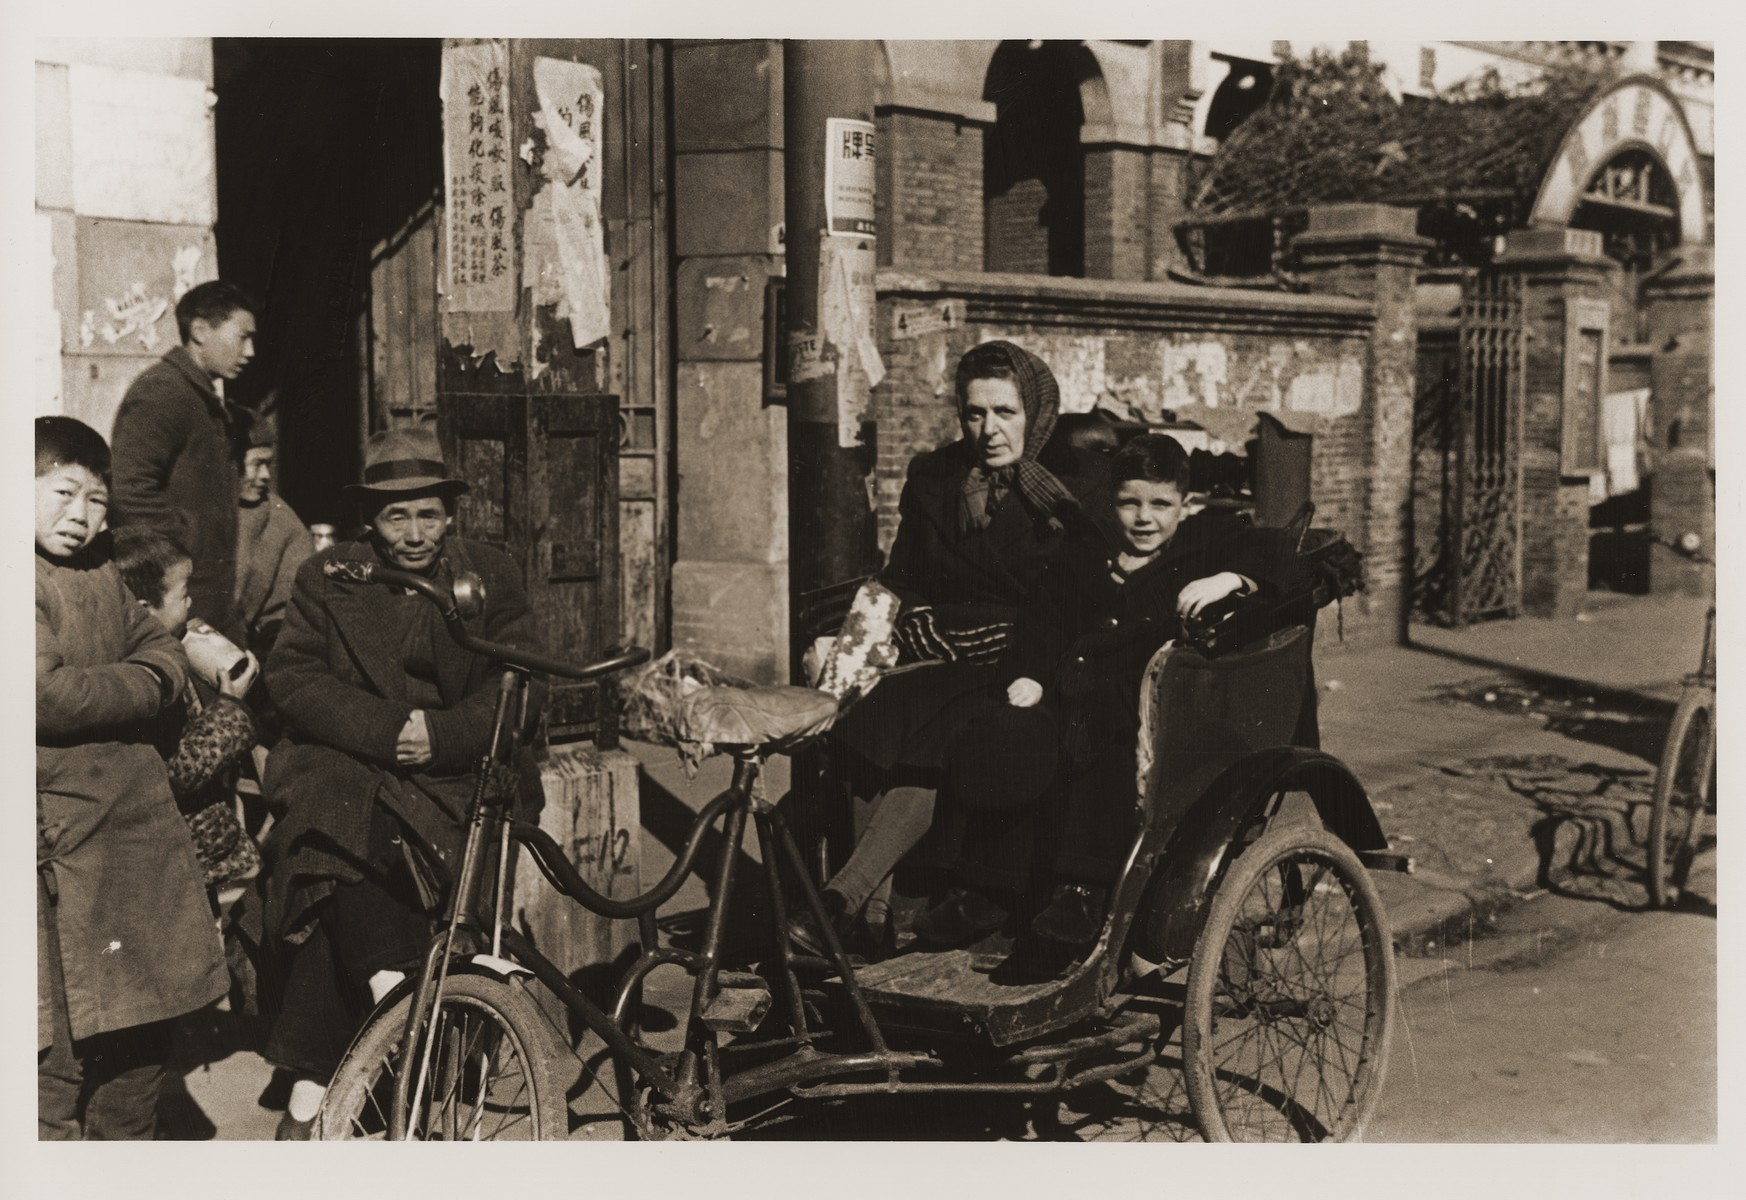 Austrian Jewish refugees Camilla Goldstaub and Harry Fiedler sit in a pedicab on Tongshan Road.